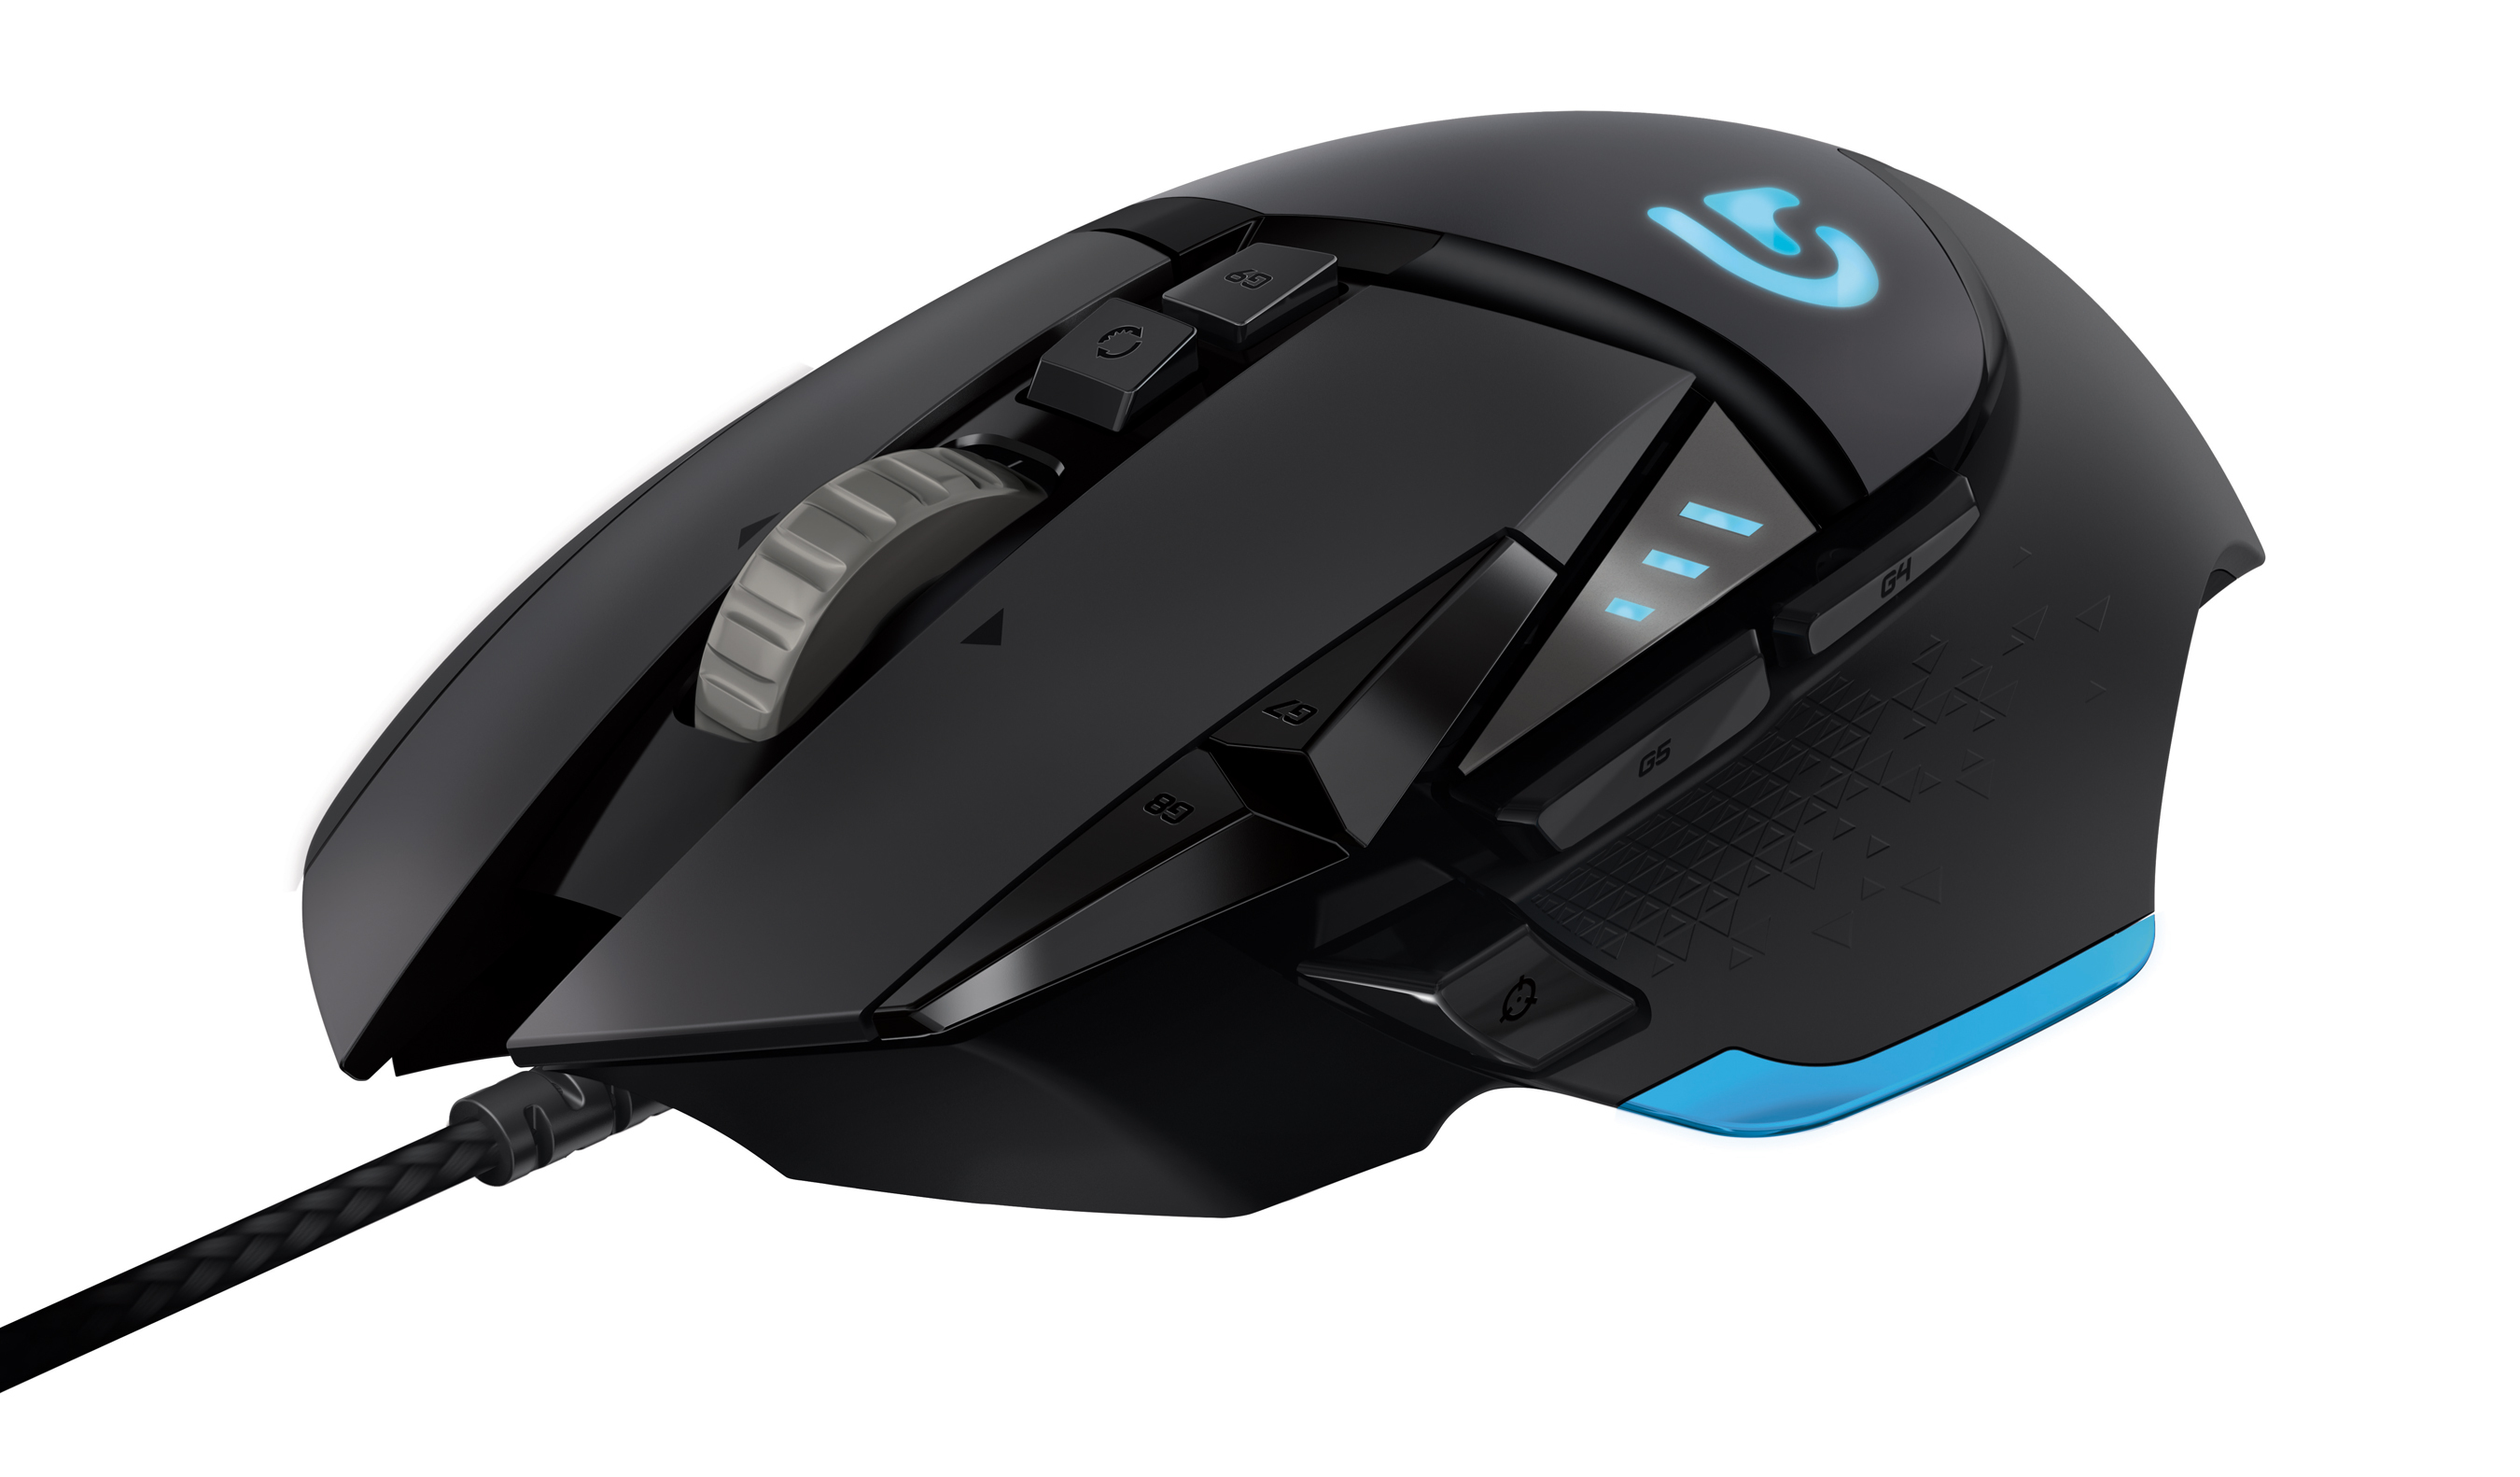 Logitech Launches First-of-Its-Kind Logitech G Tunable Gaming Mouse ...